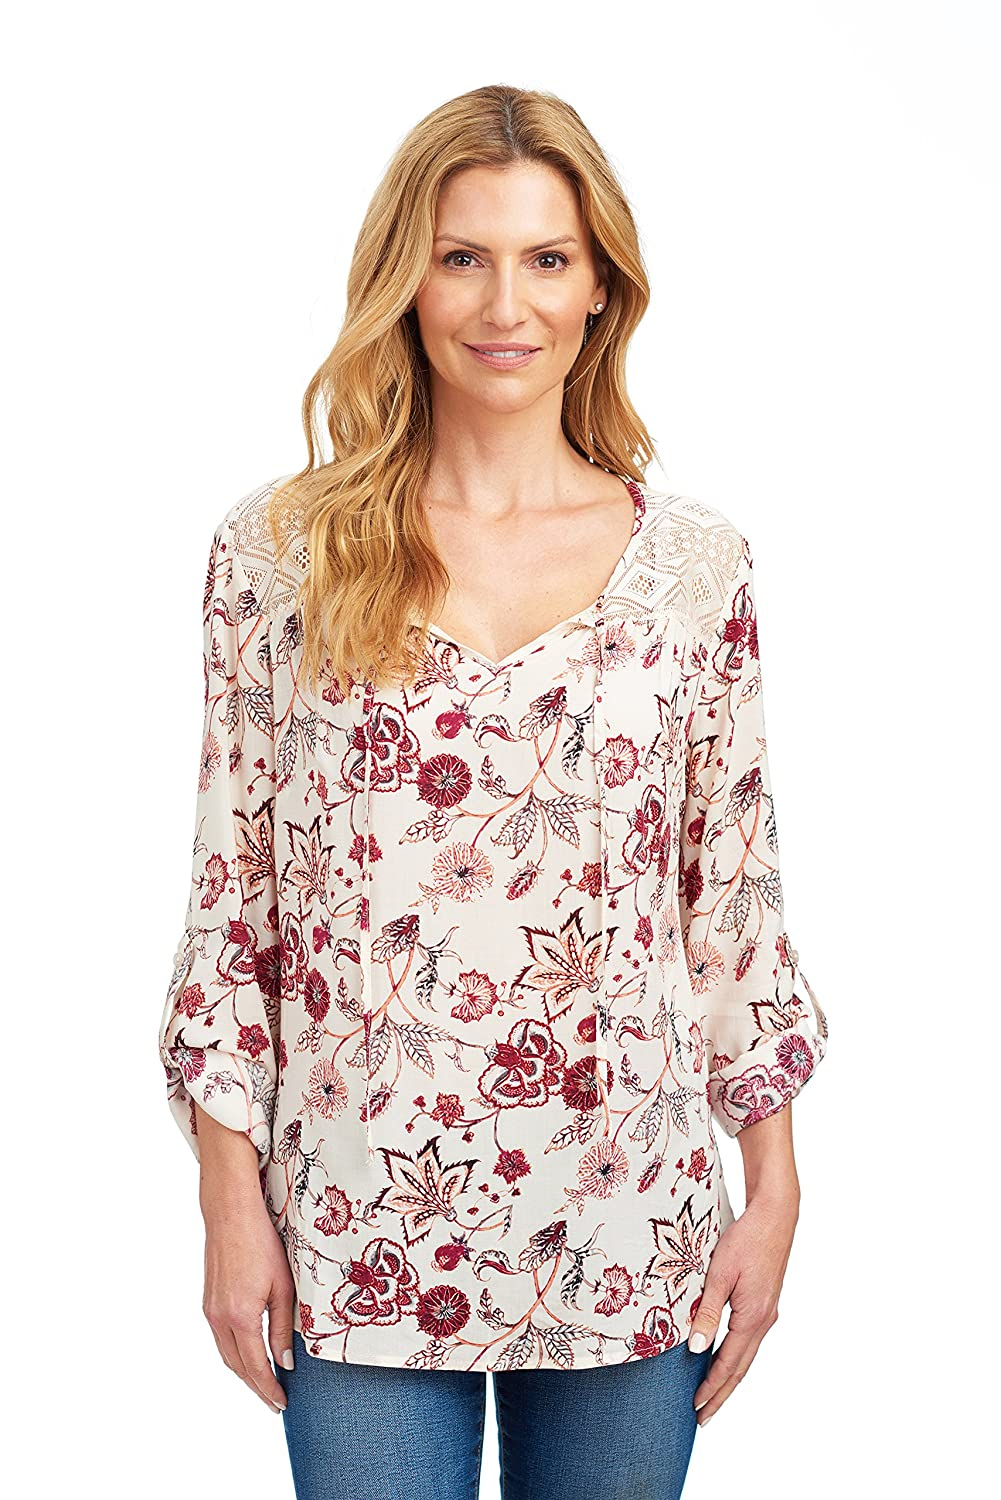 0c62b7a476dba Women's long sleeve blouses with a complementary flowy fit made from 100%  rayon. Roll tab cuffed sleeves. Keyhole-like tie neckline